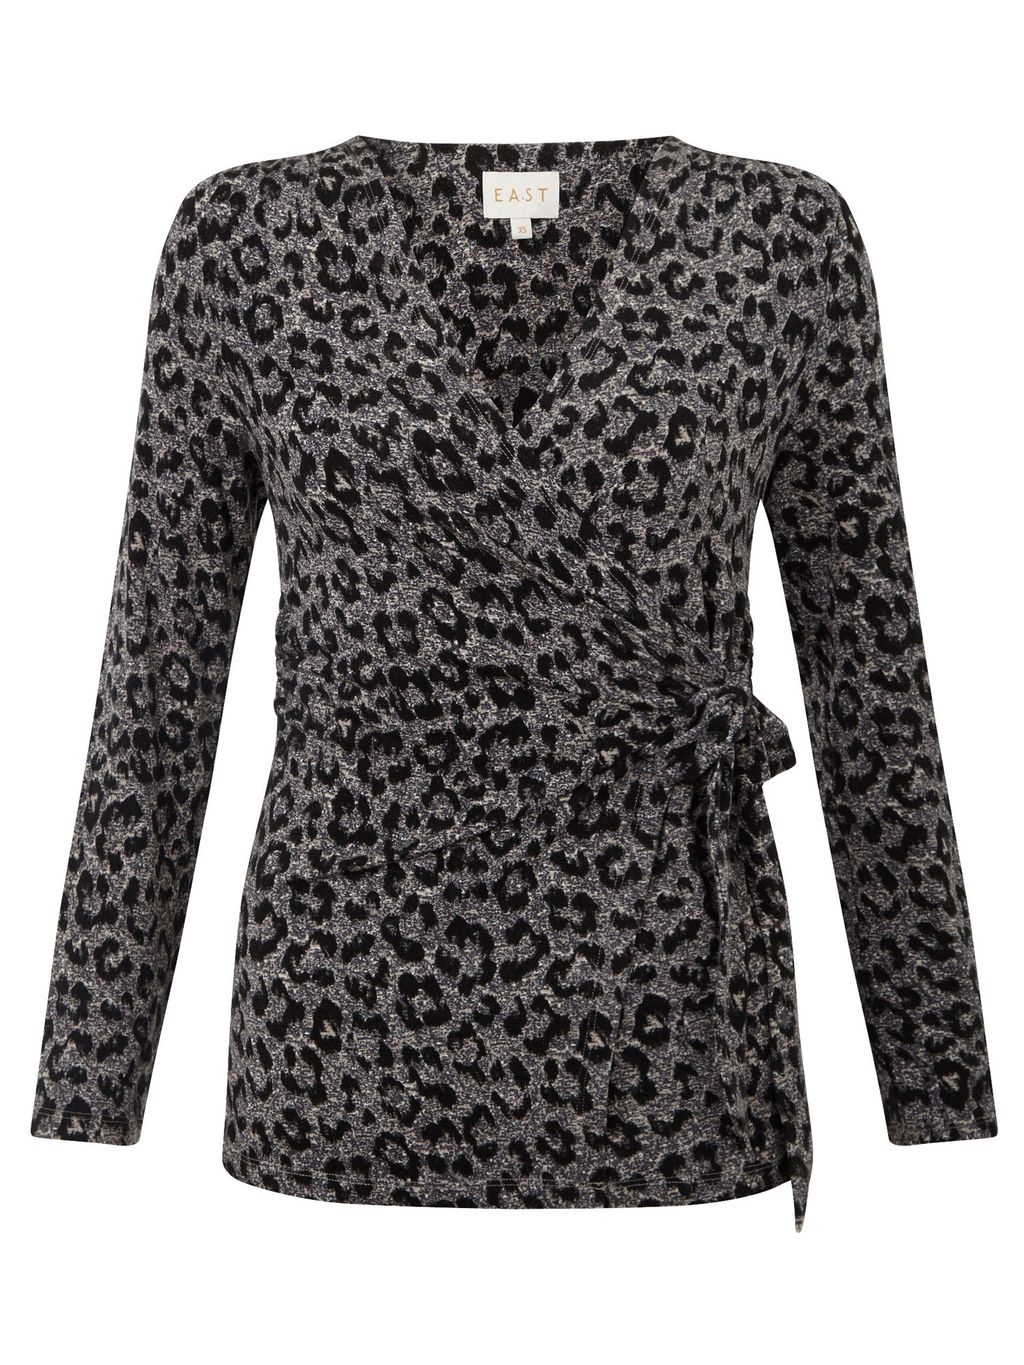 Leopard Print Wrap Top, Neutral - neckline: v-neck; style: wrap/faux wrap; waist detail: belted waist/tie at waist/drawstring; predominant colour: silver; secondary colour: charcoal; occasions: evening; length: standard; fibres: viscose/rayon - stretch; fit: body skimming; sleeve length: long sleeve; sleeve style: standard; pattern type: fabric; pattern: animal print; texture group: jersey - stretchy/drapey; multicoloured: multicoloured; season: s/s 2016